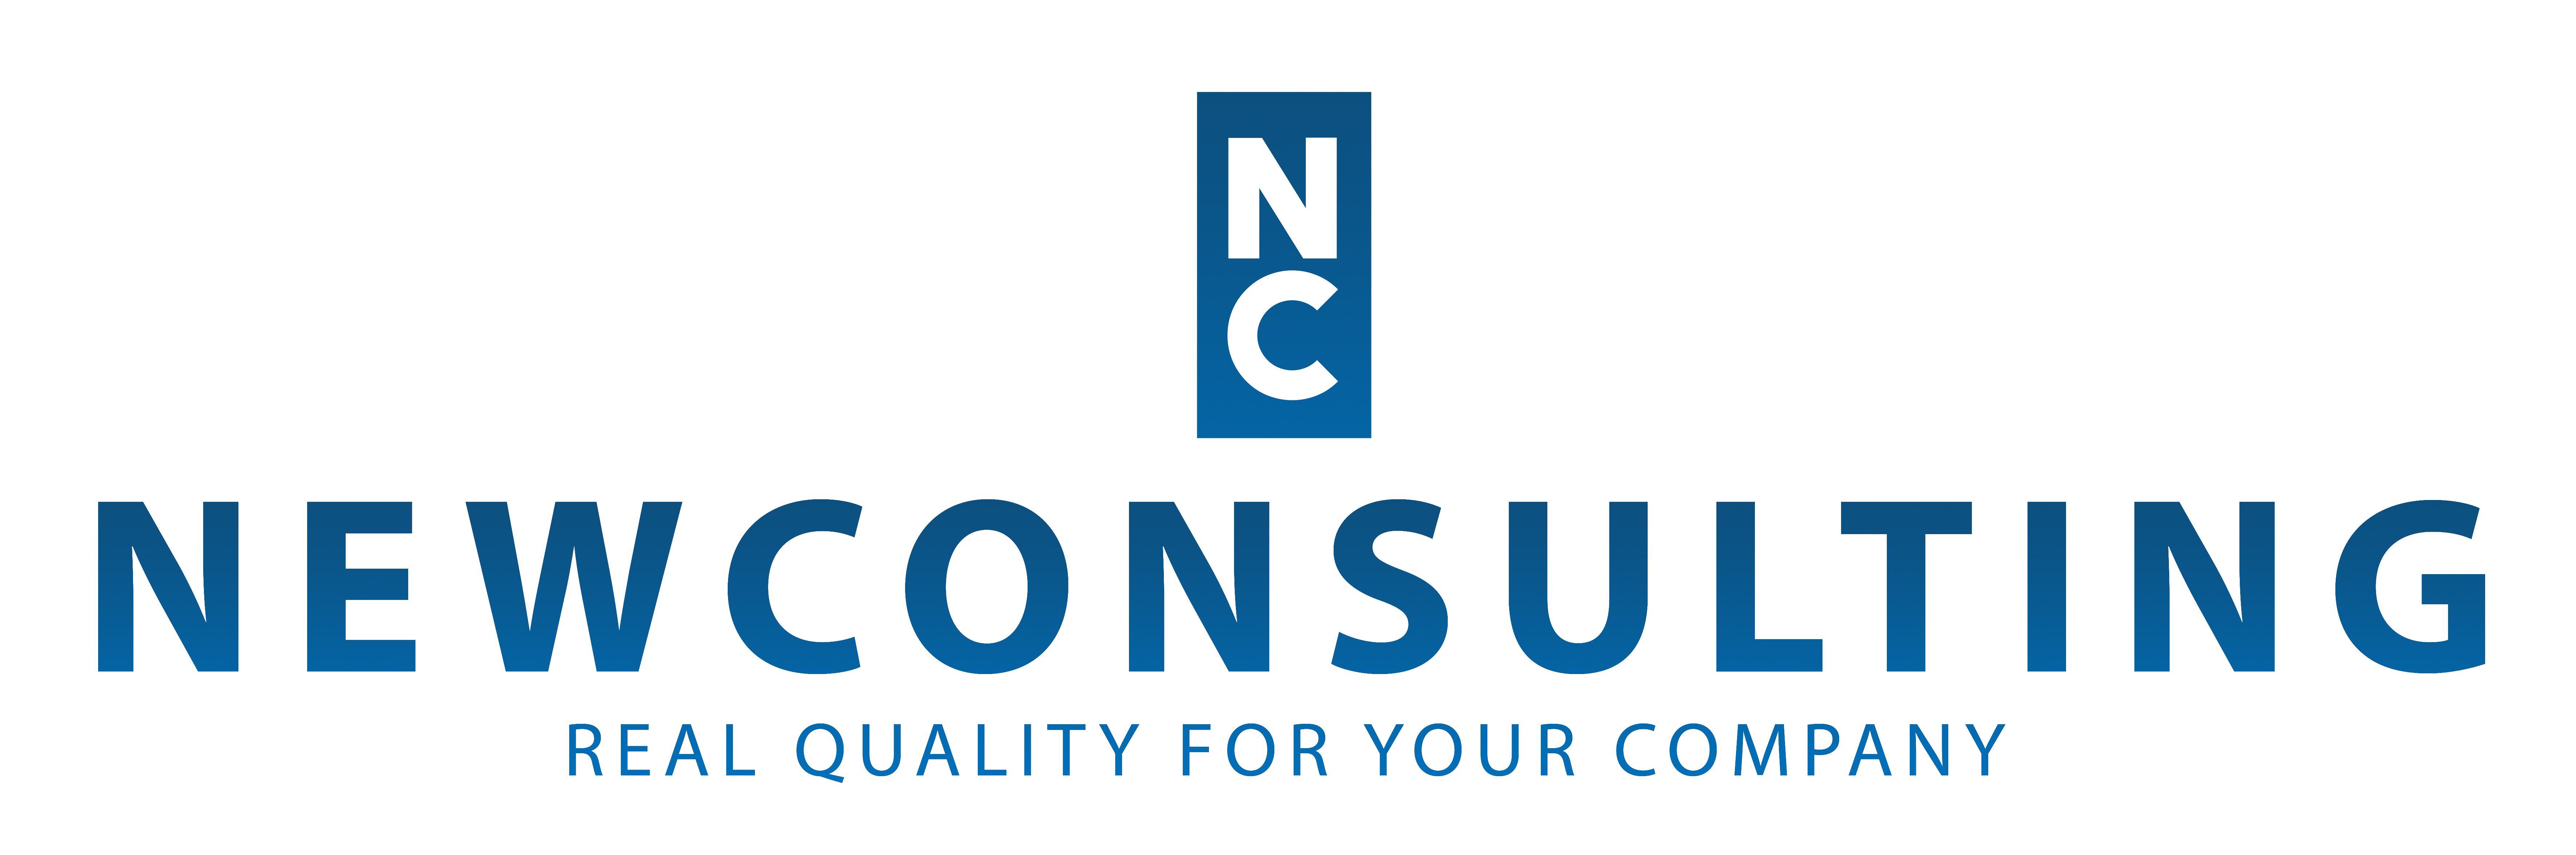 newconsulting